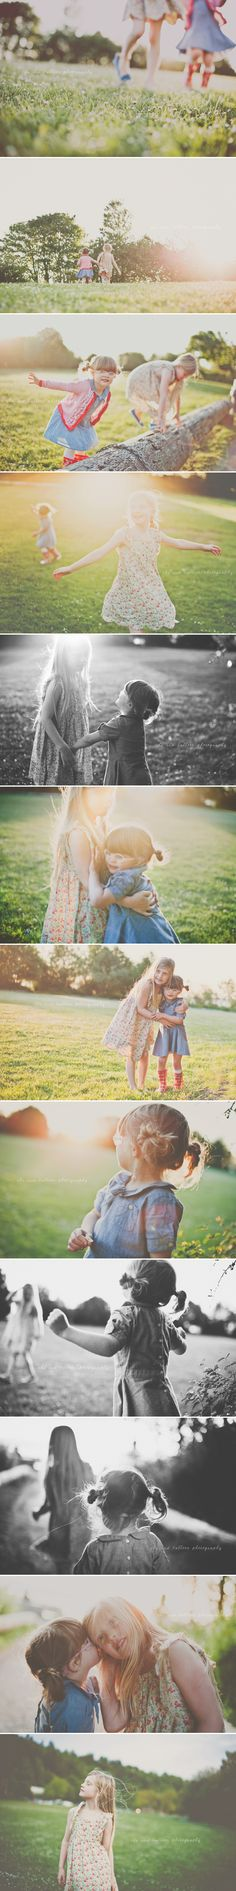 Oh my goodness, I love the blog post that goes with these photos. The woman is writing to her daughters, saying what their favorite things/hobbies are at this age. Such a cool idea.